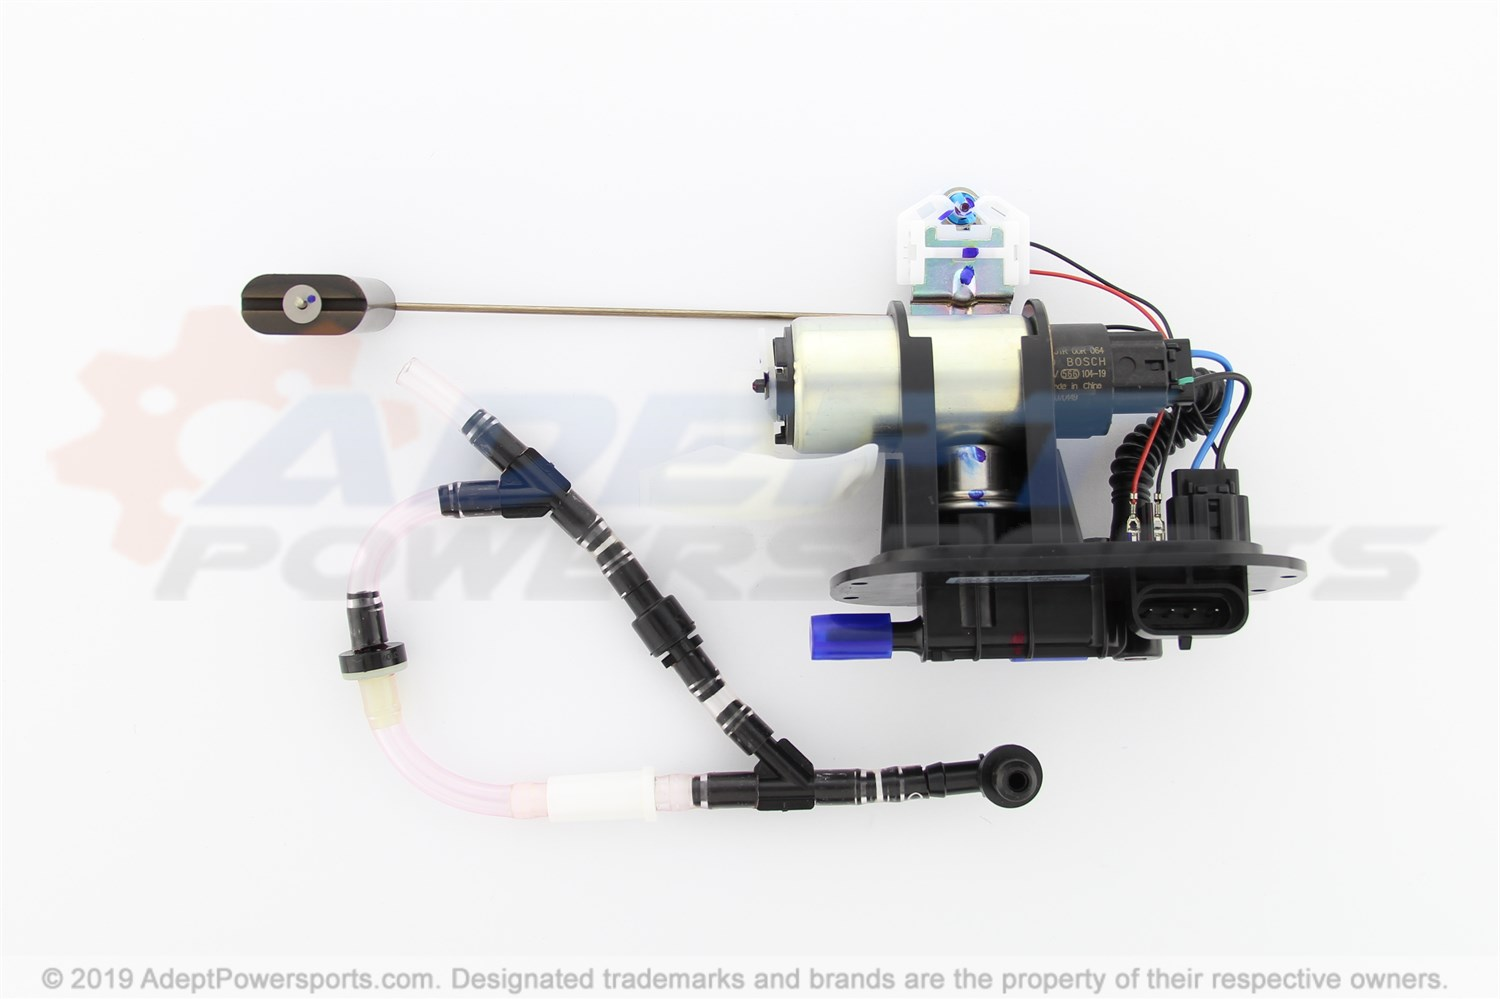 2013 polaris ranger wiring diagram with Can Am2 Ensemble Fuel Pump Kit 703500771 Part on 2012 Polaris Ranger 800 Xp Wiring Diagram together with 1998 F150 Vacuum Diagram further 171788548197 additionally 1079041 besides How To Fix A P0010 Code In 2008 Malibu.